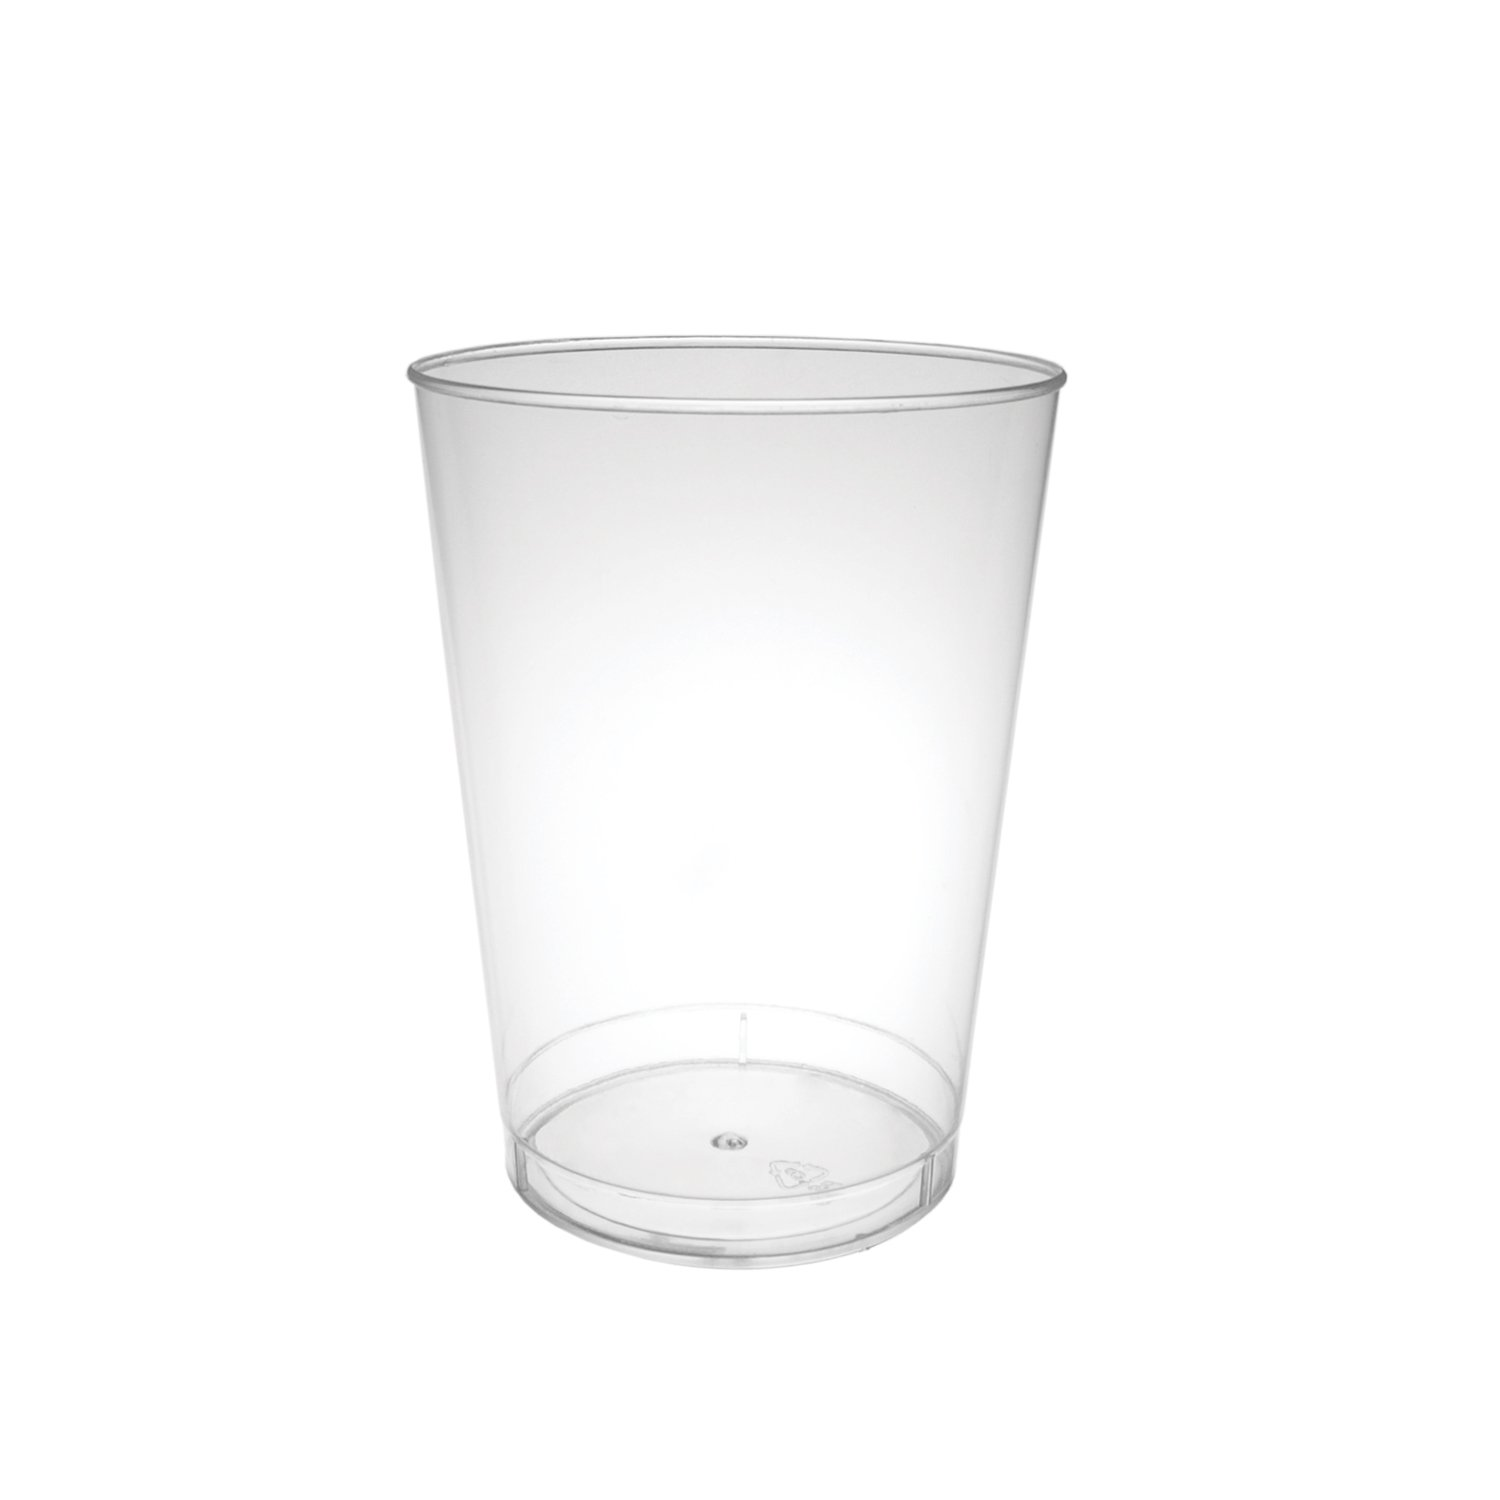 Party Essentials 20 Count Hard Plastic Party Cups, 16-Ounce, Pint Glasses, Clear